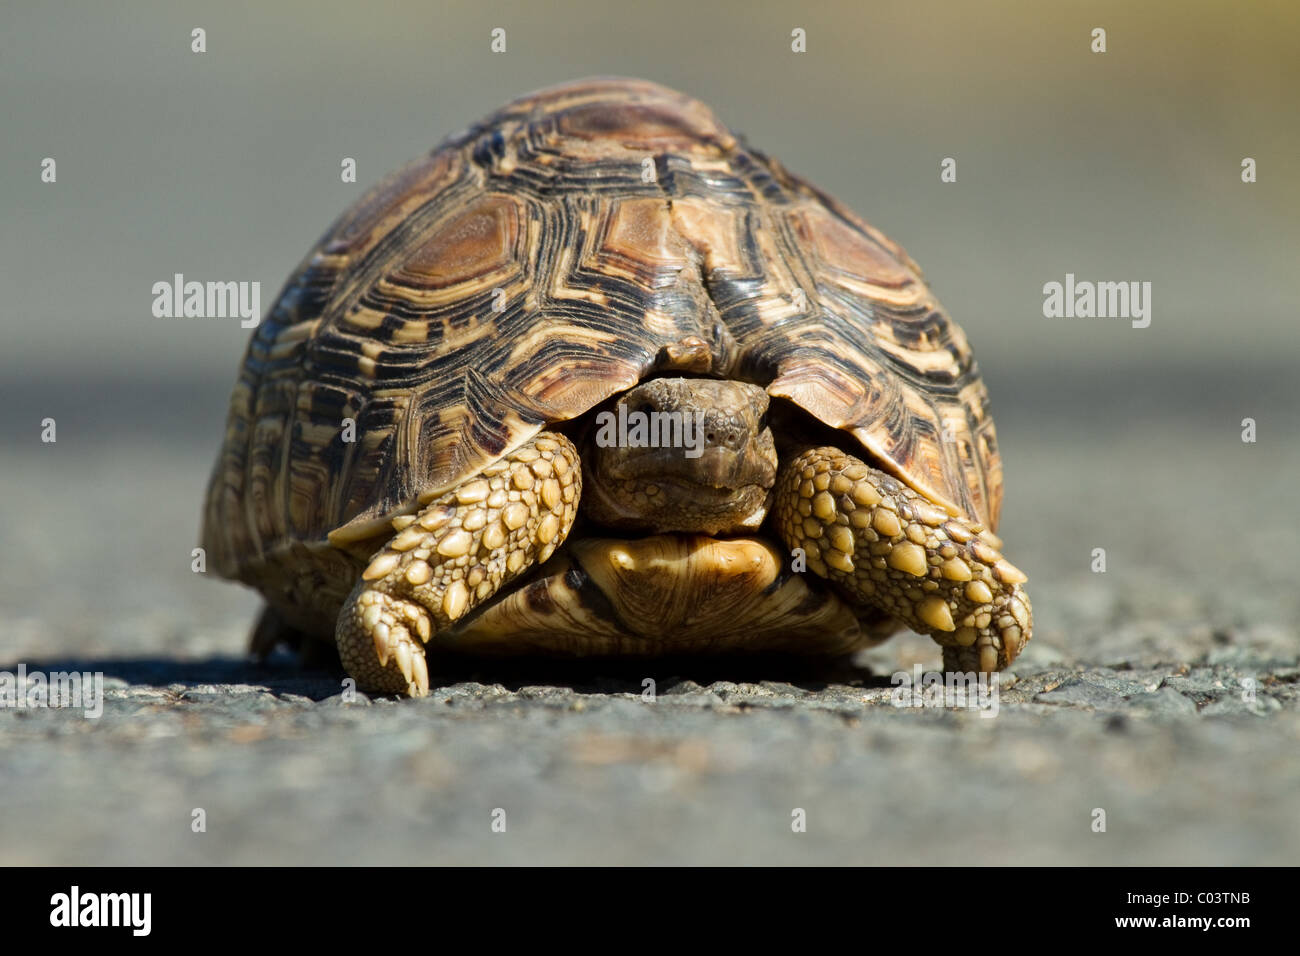 Serrated hinged tortoise South Africa - Stock Image